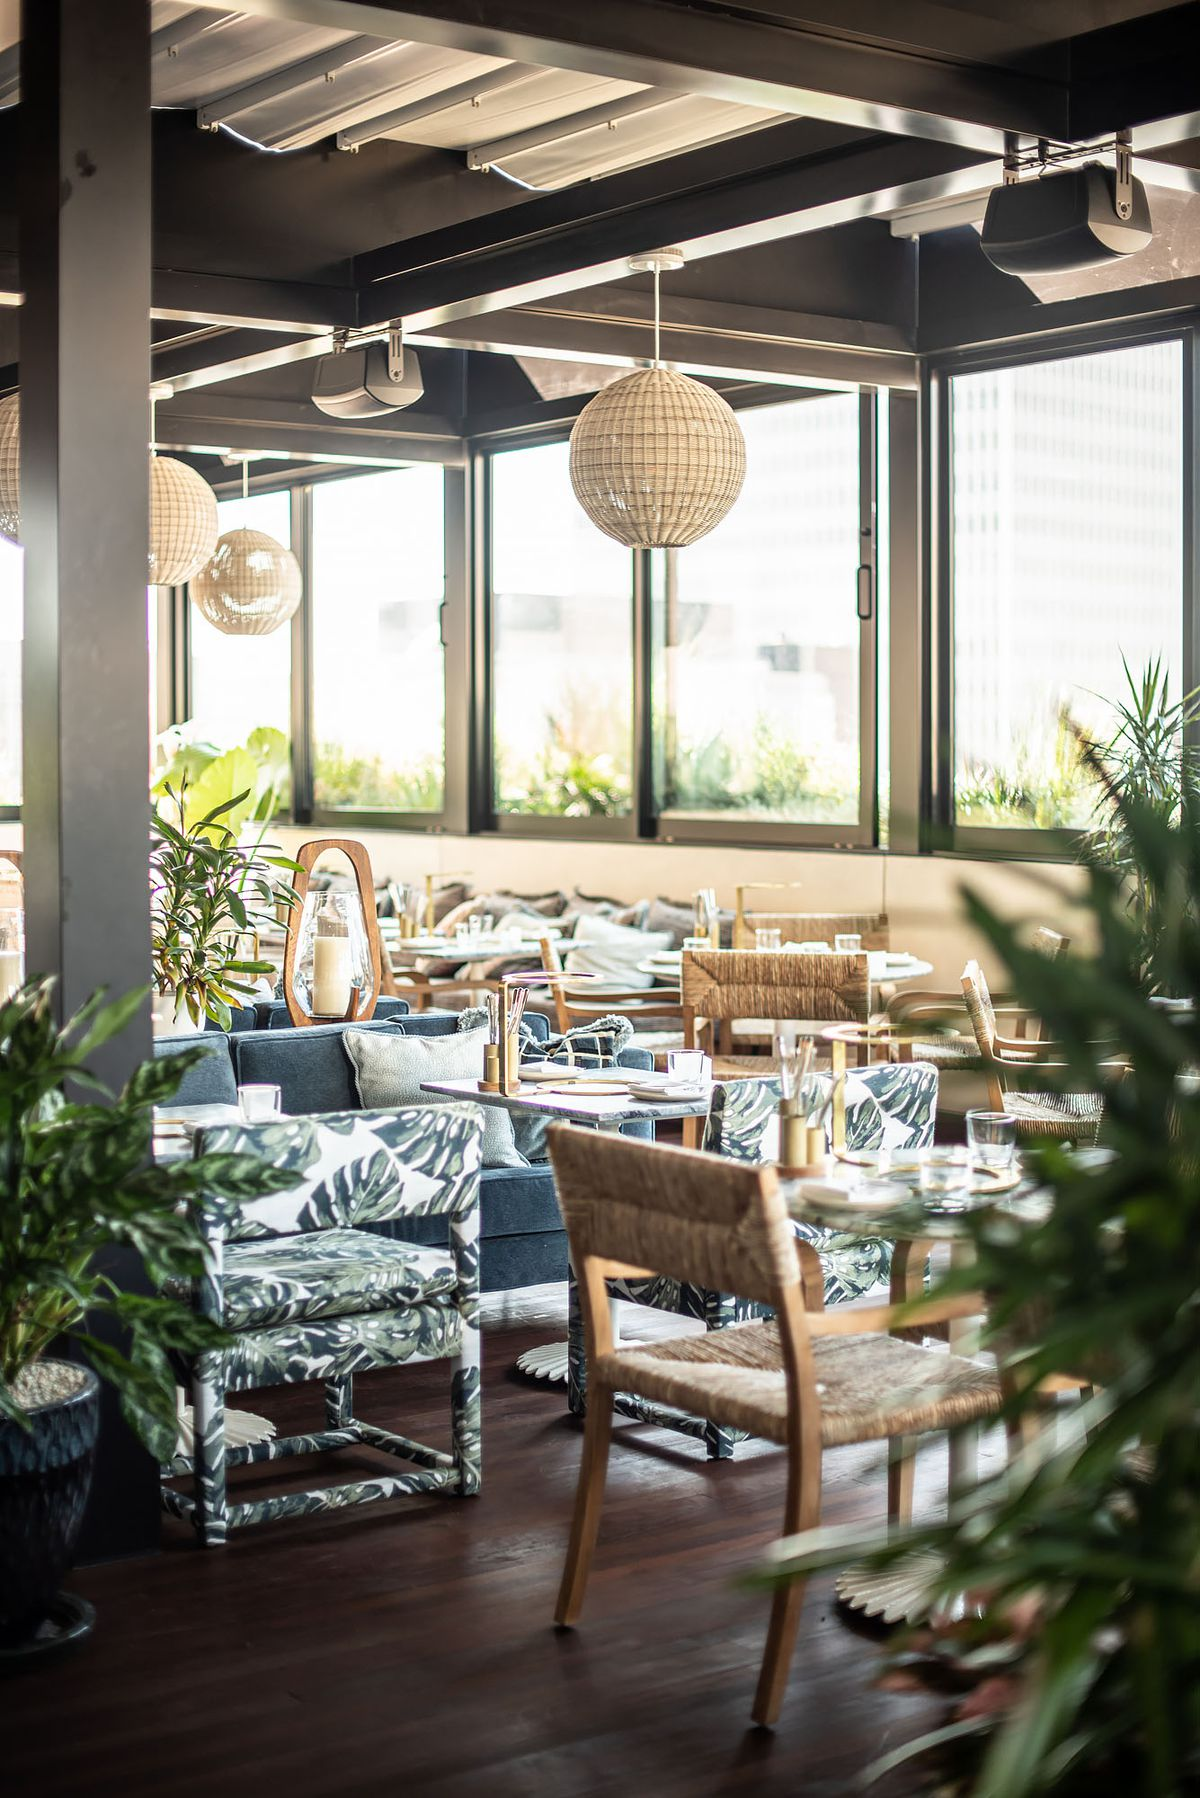 Leafy touches inside a rooftop restaurant.